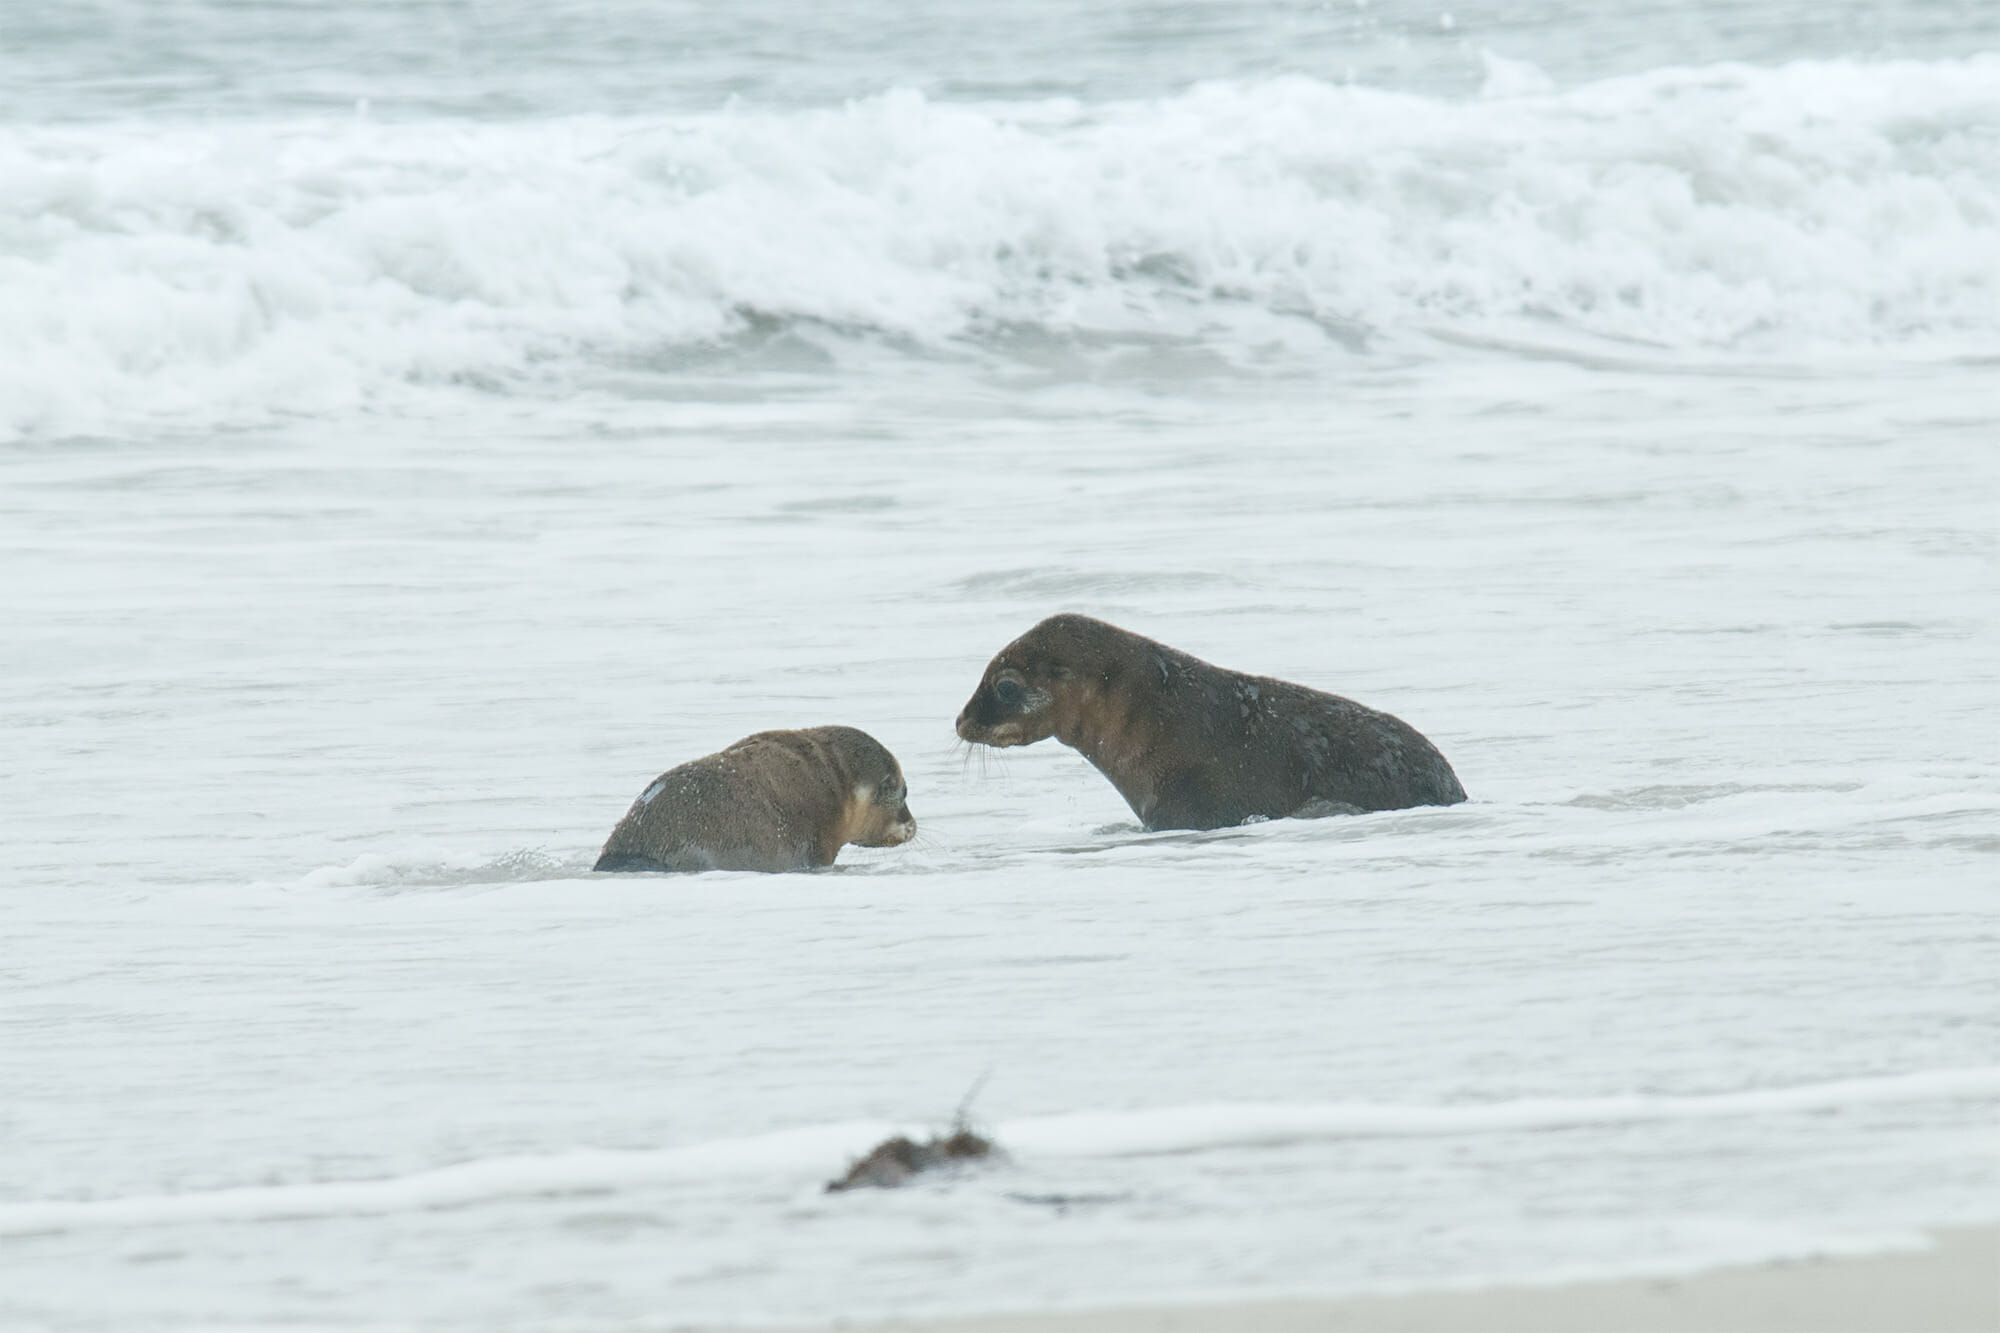 Australian sea lion pups learning to swim